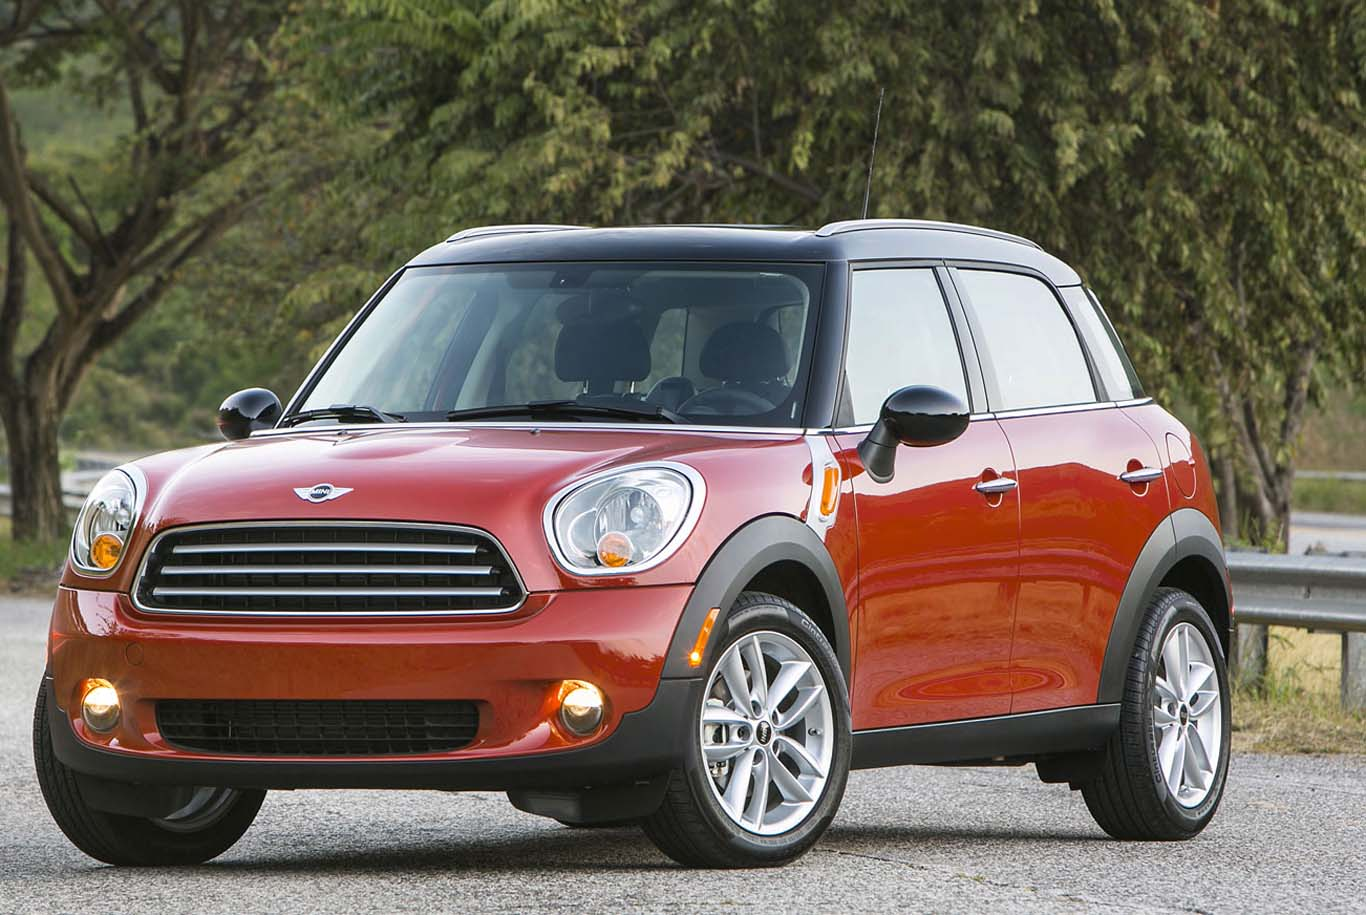 MINI-Countryman-2015-best-fuel-efficient-crossover